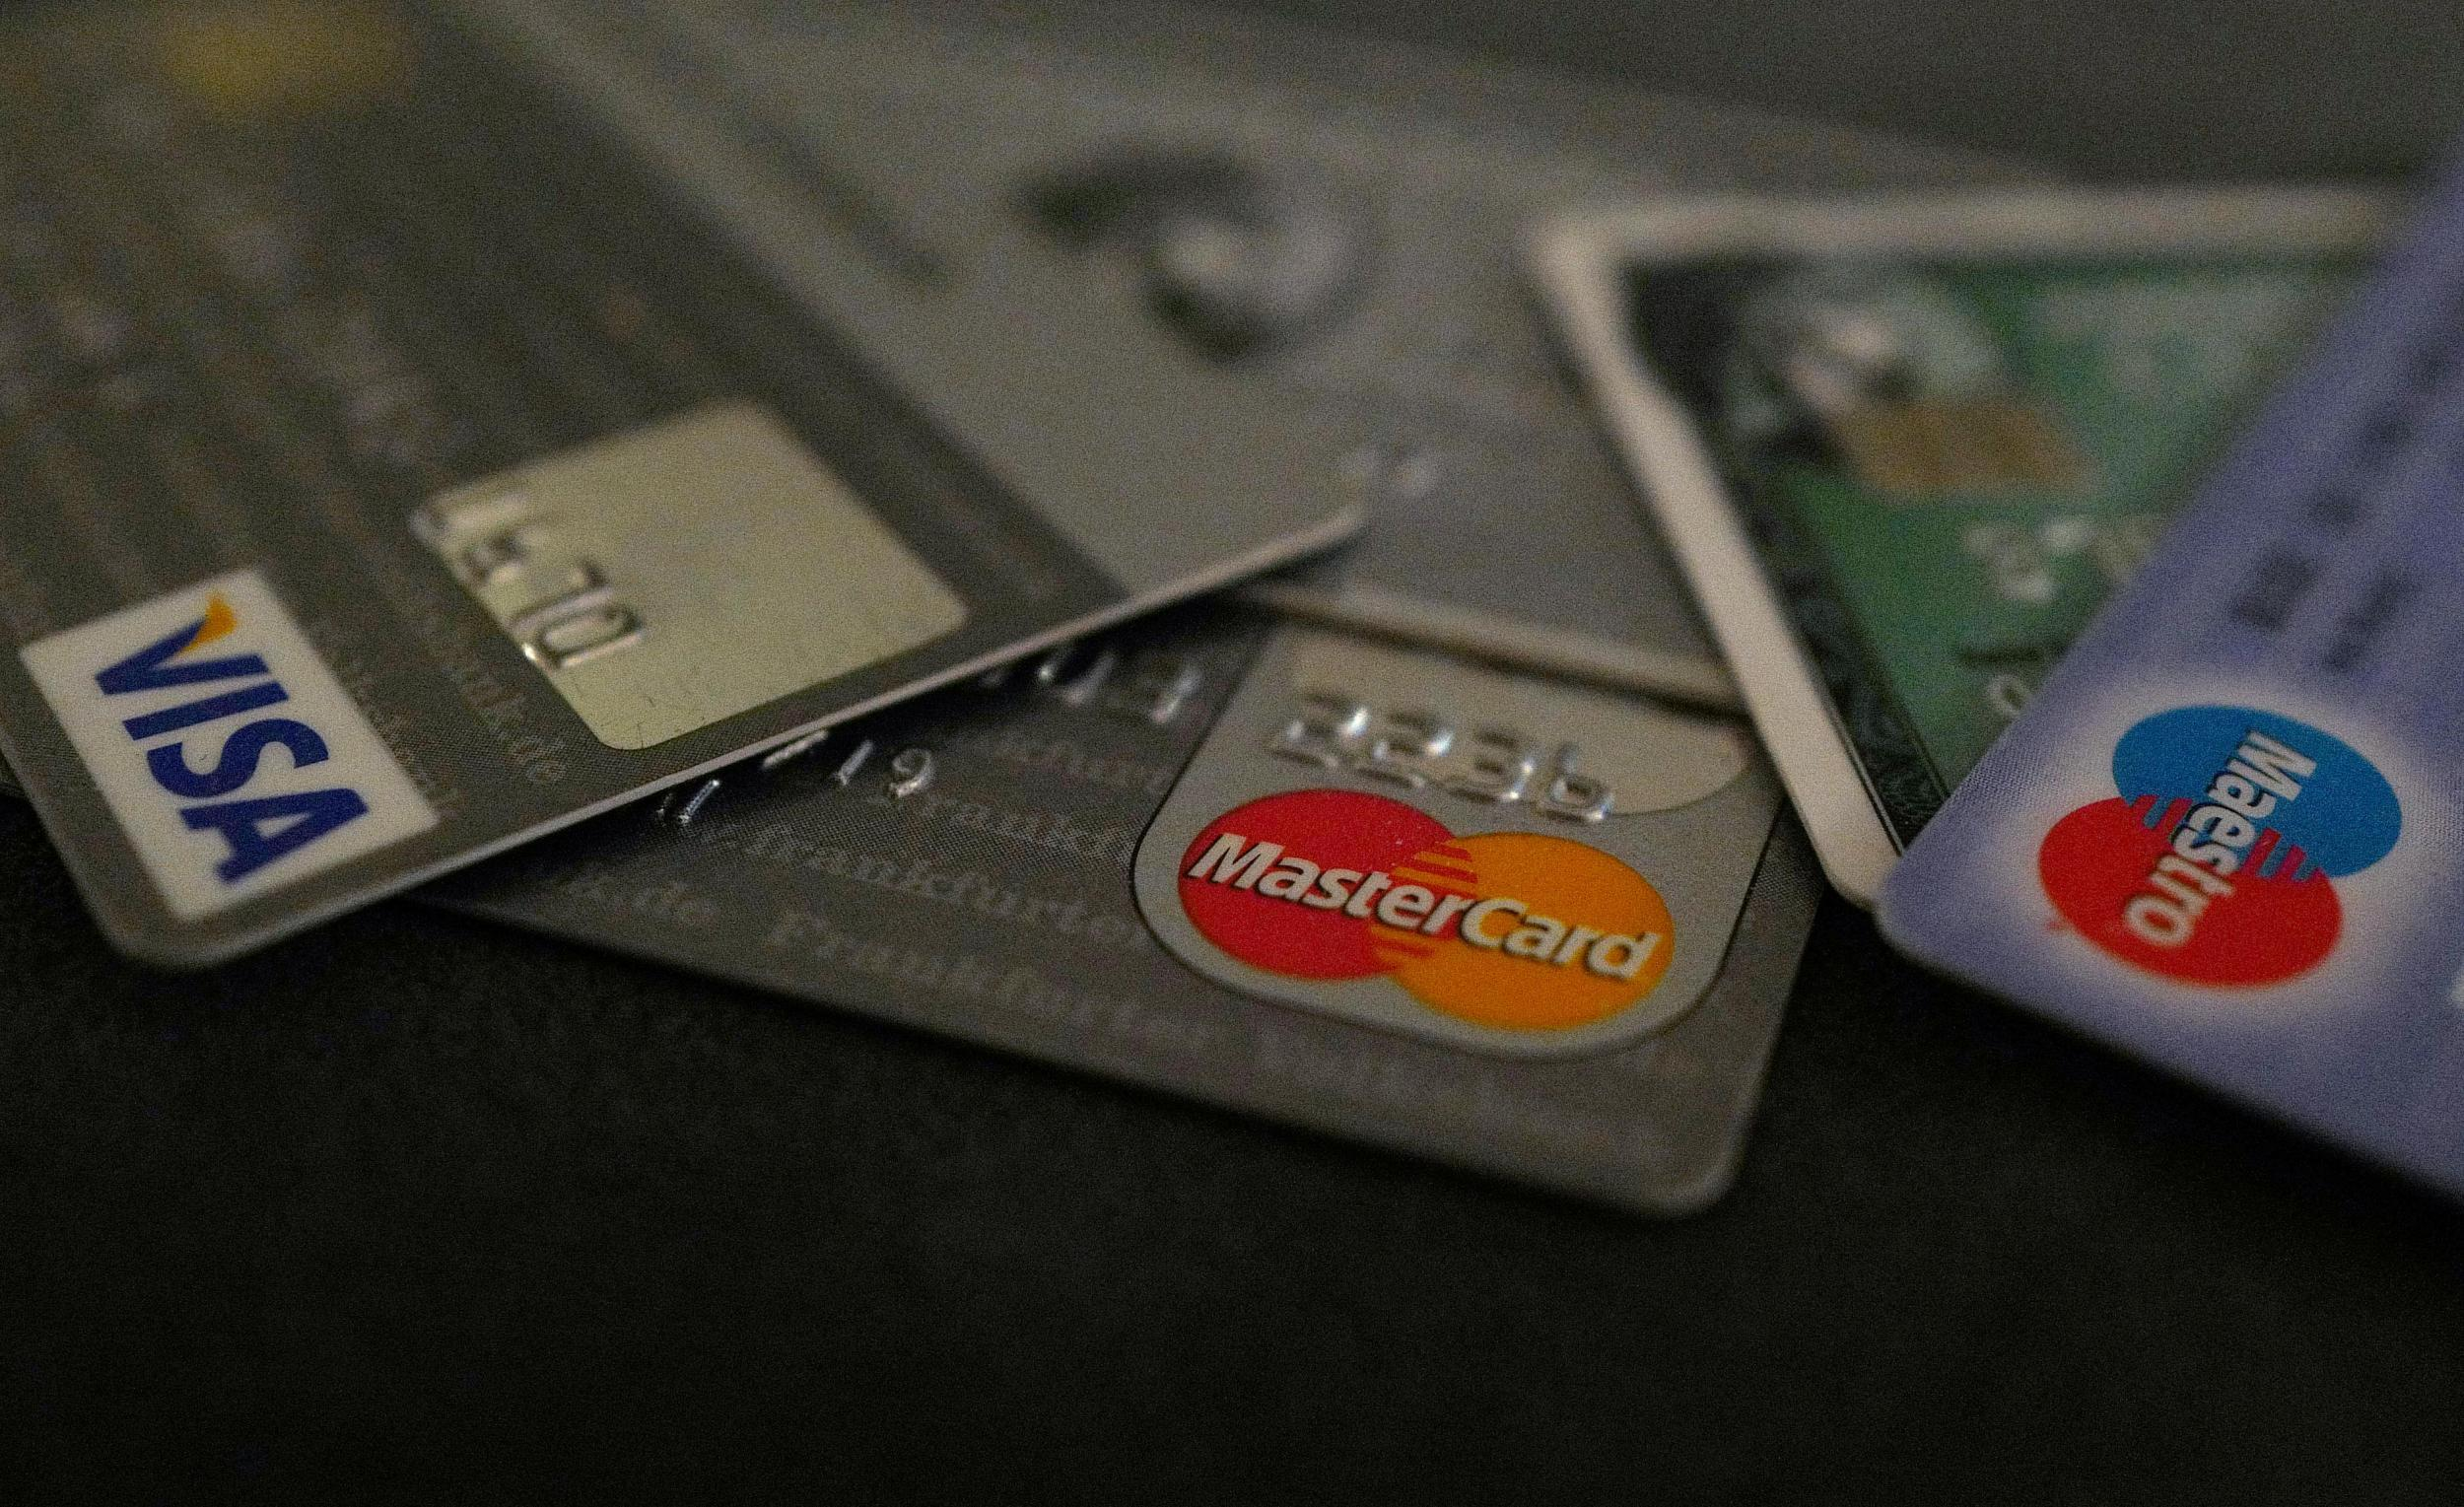 Samsclub Credit Login >> UK debit card users charged twice for transactions due to ...